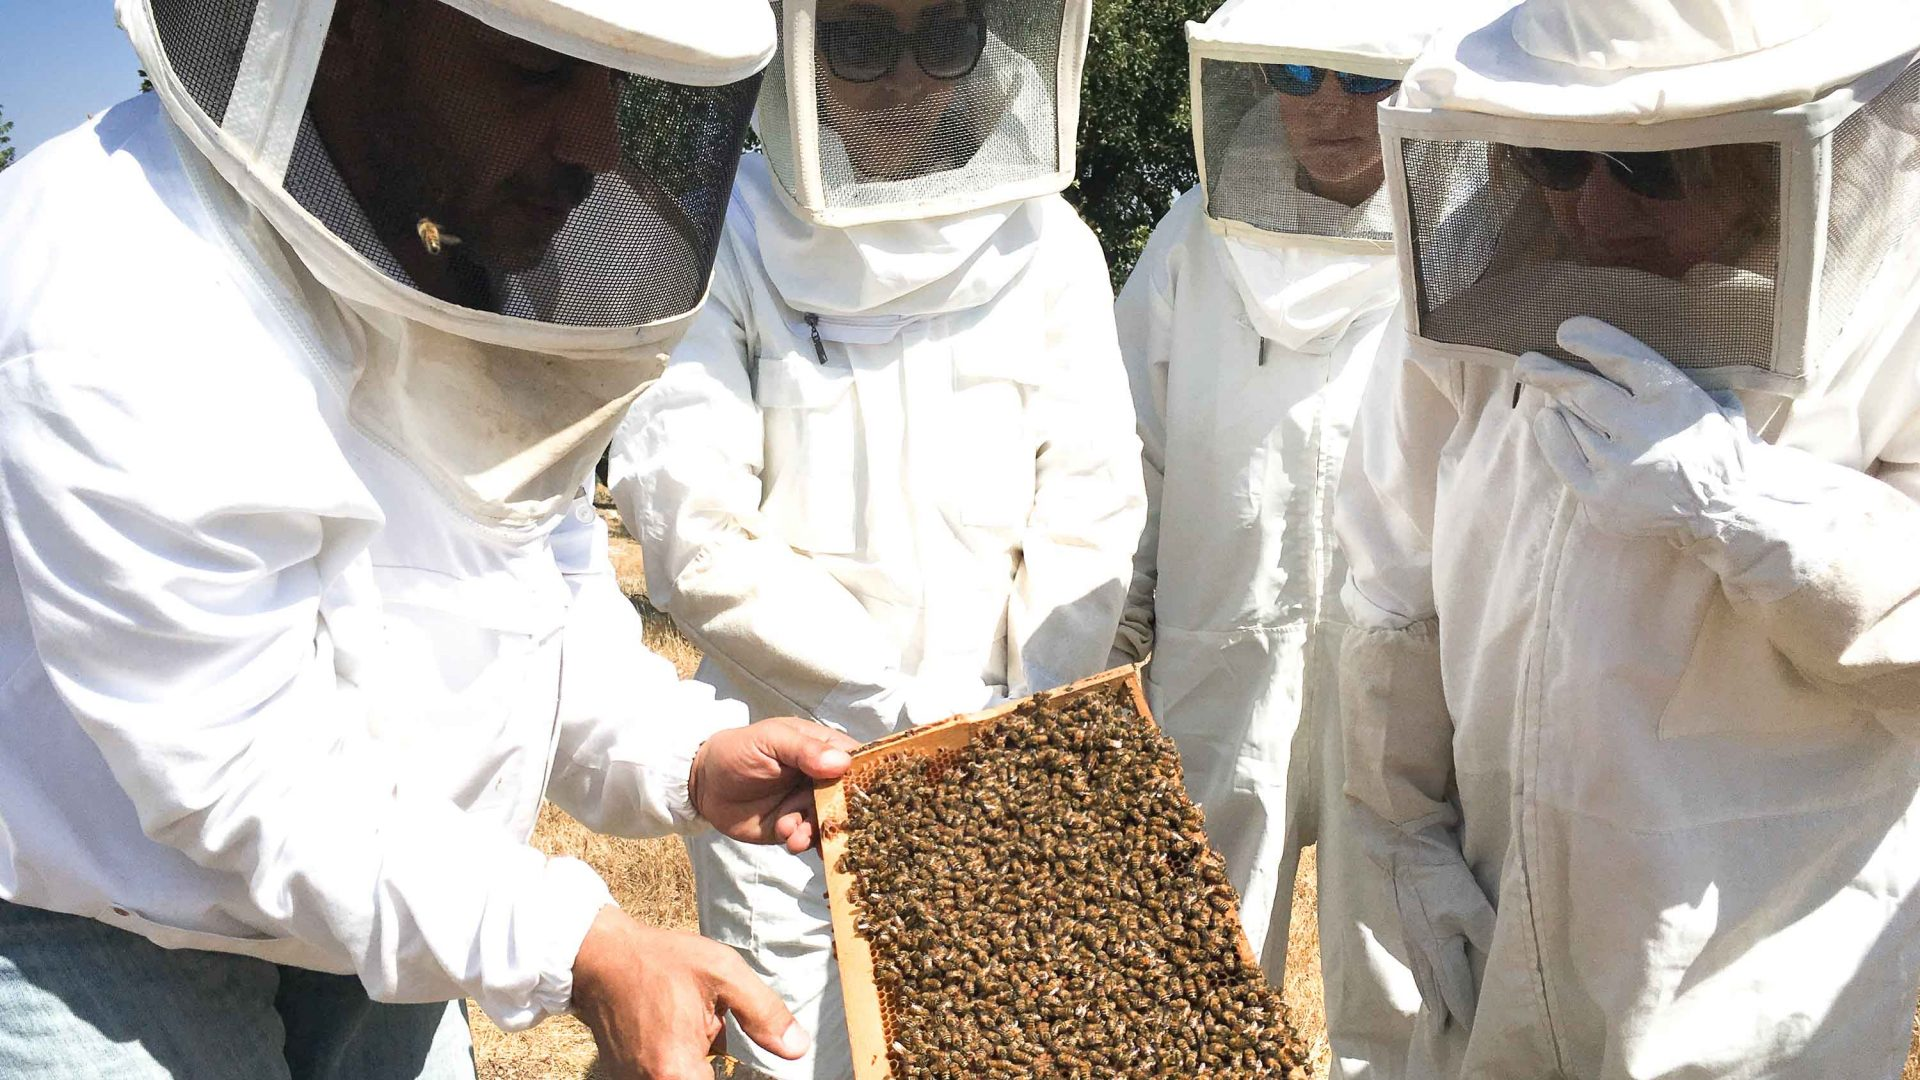 A local apiary where former soldier-turned-beekeeper Yousef Sayyah has been tending bees for over 15 years.